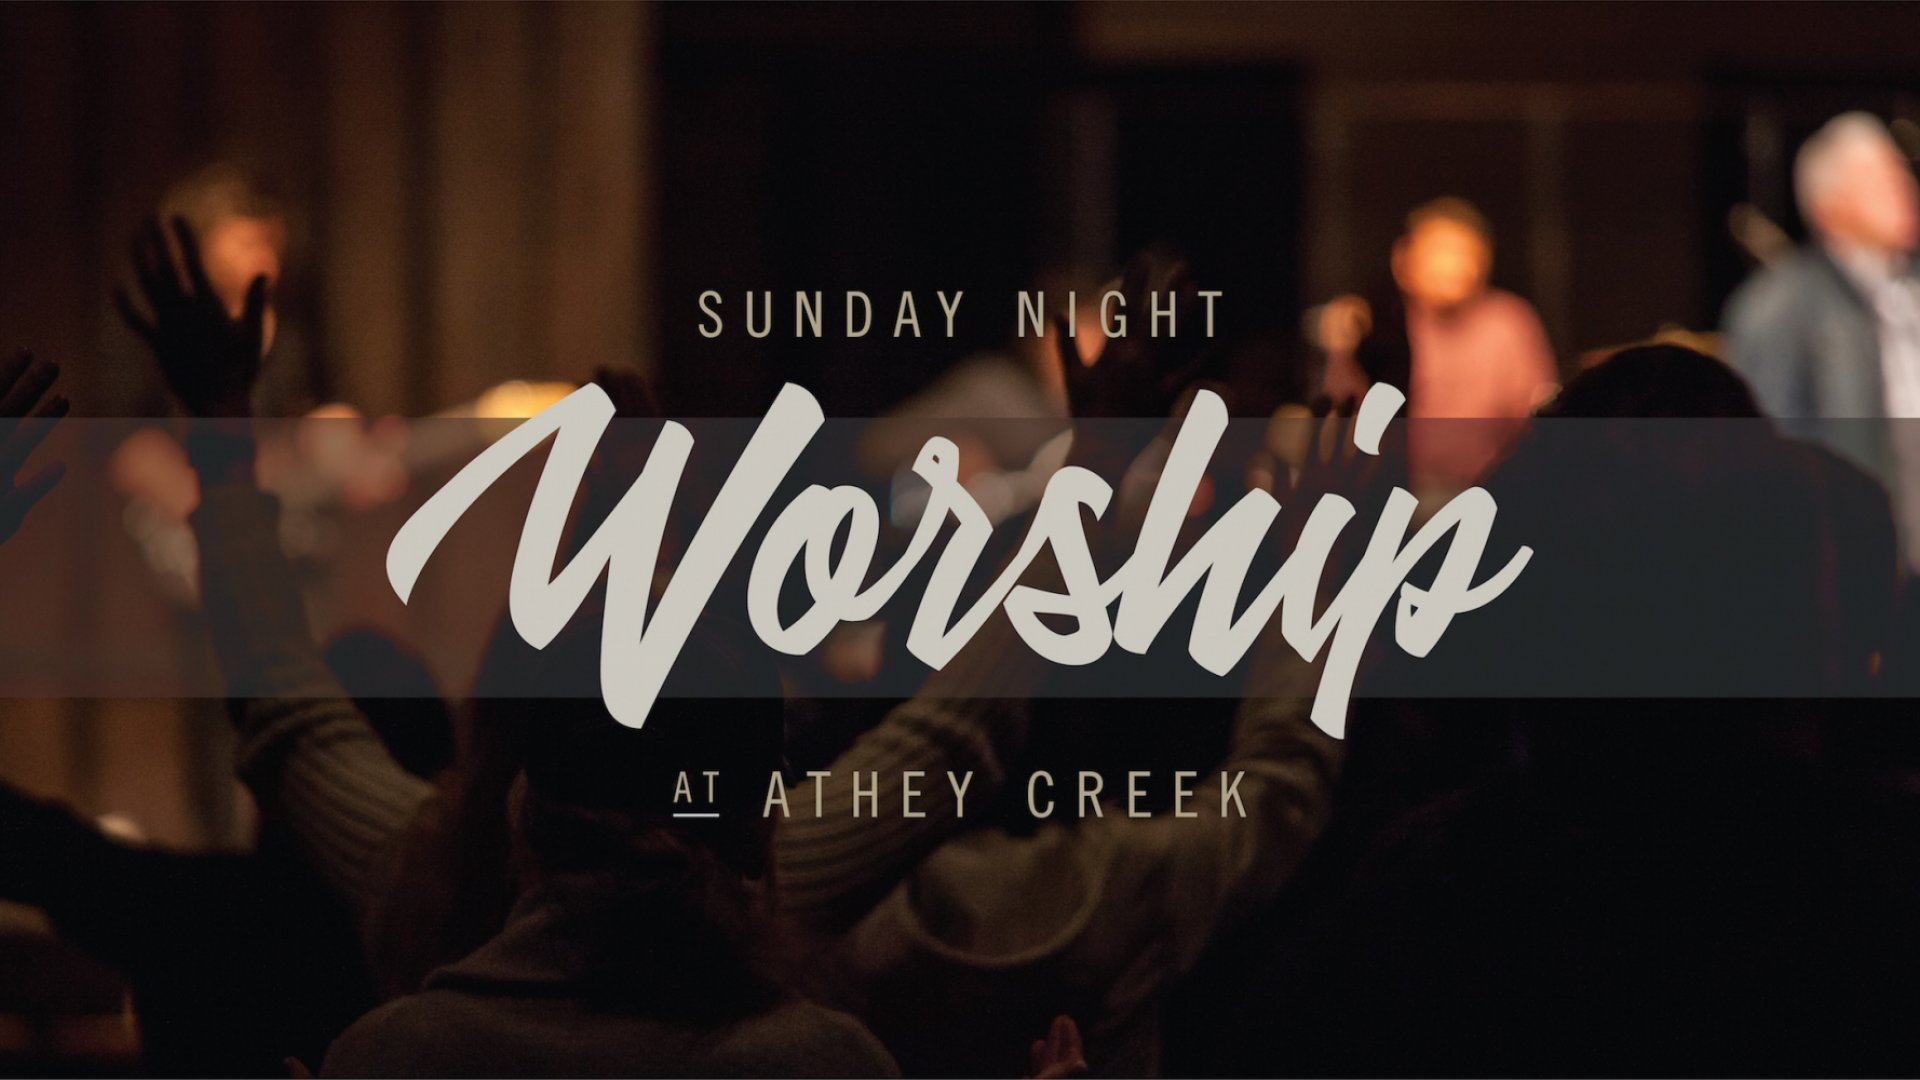 Poster for Sunday Night Worship